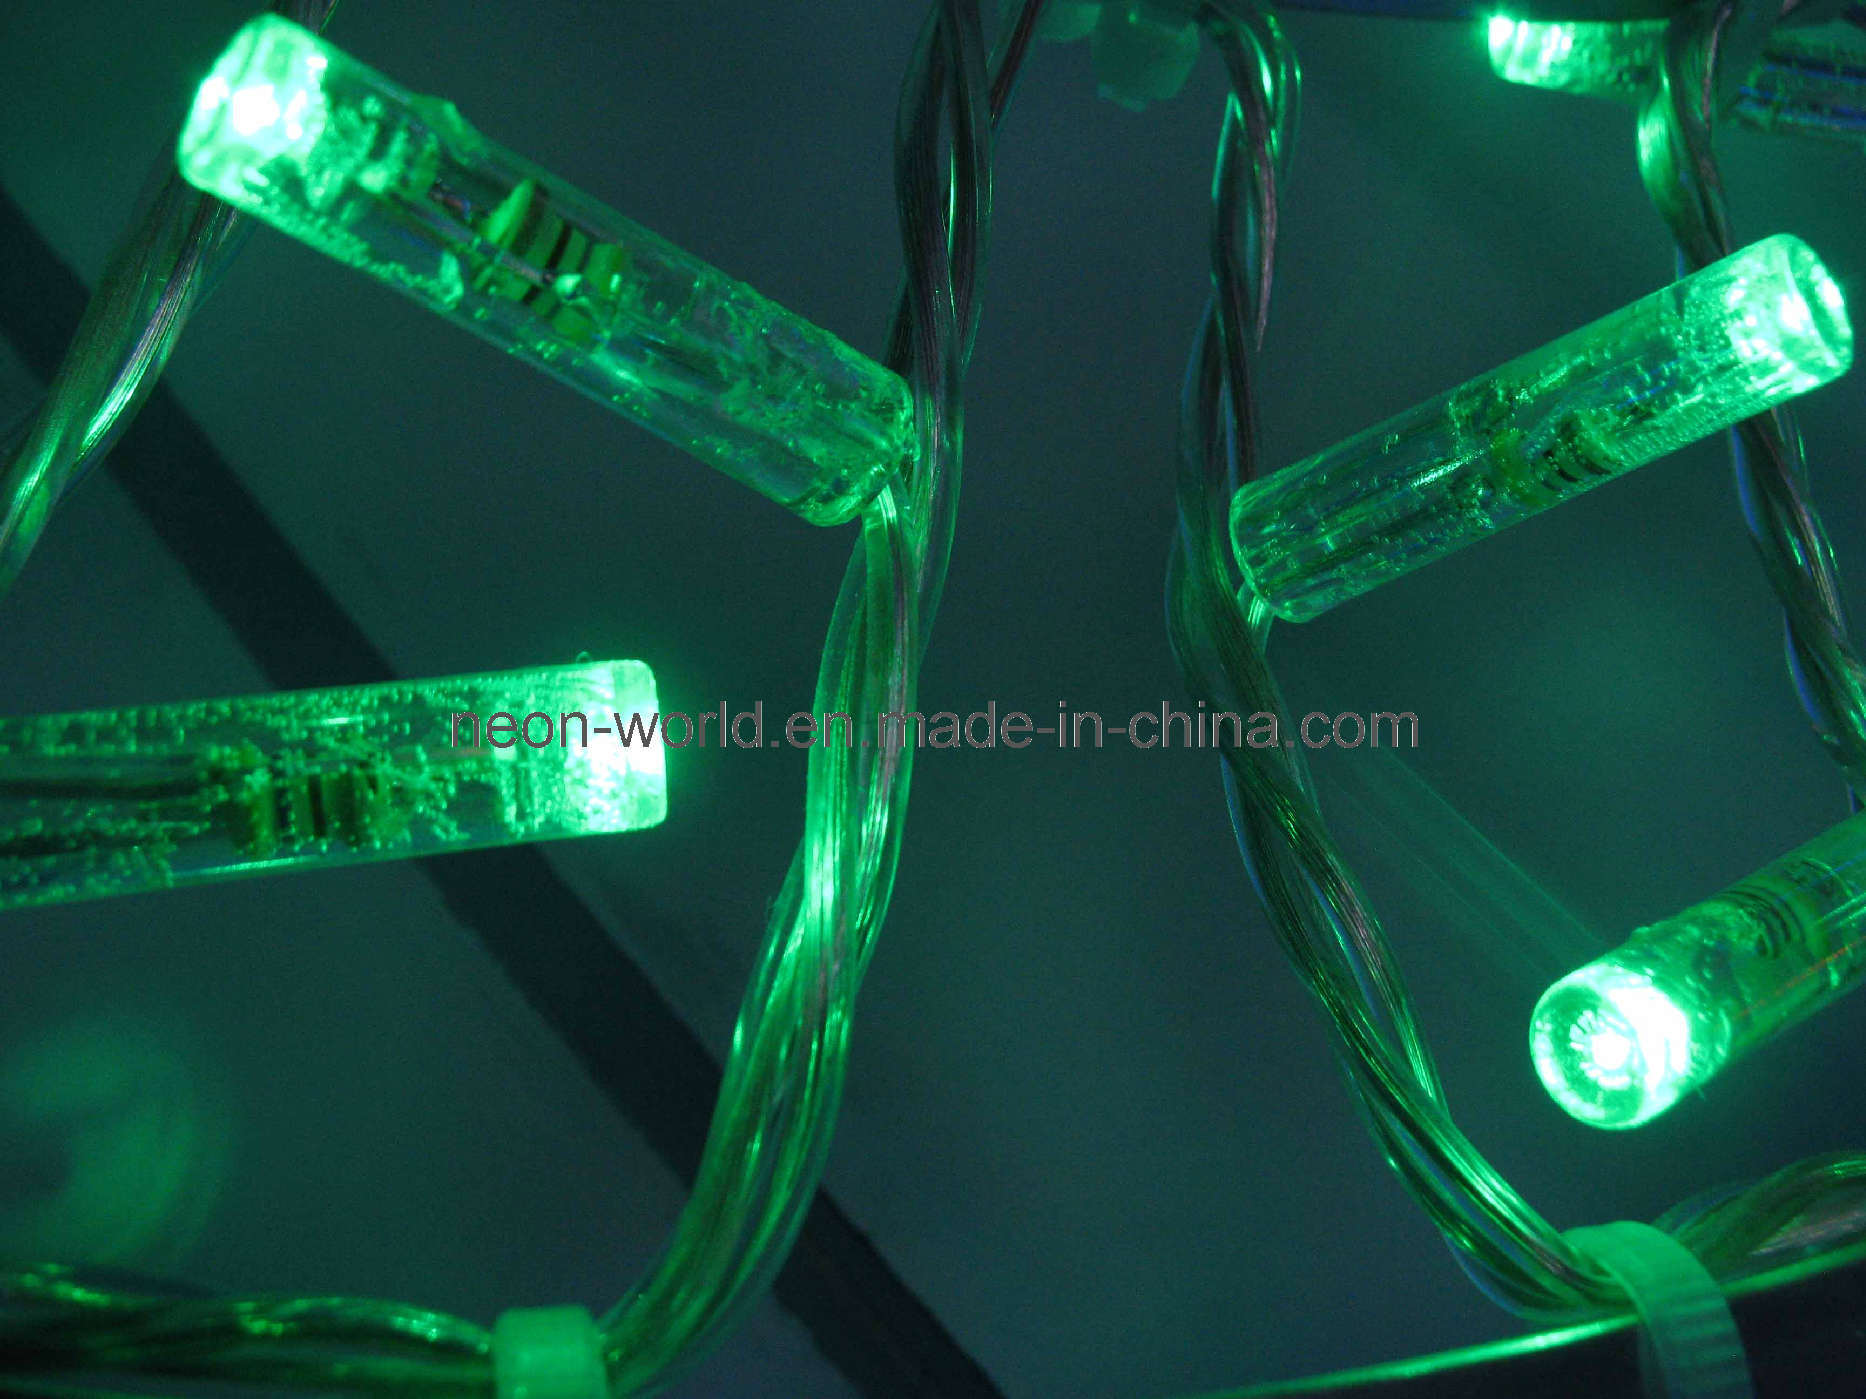 String Of Green Lights : China Green LED String Lights (24V, waterproof, decorative) - China Led String Lights, Red Led ...